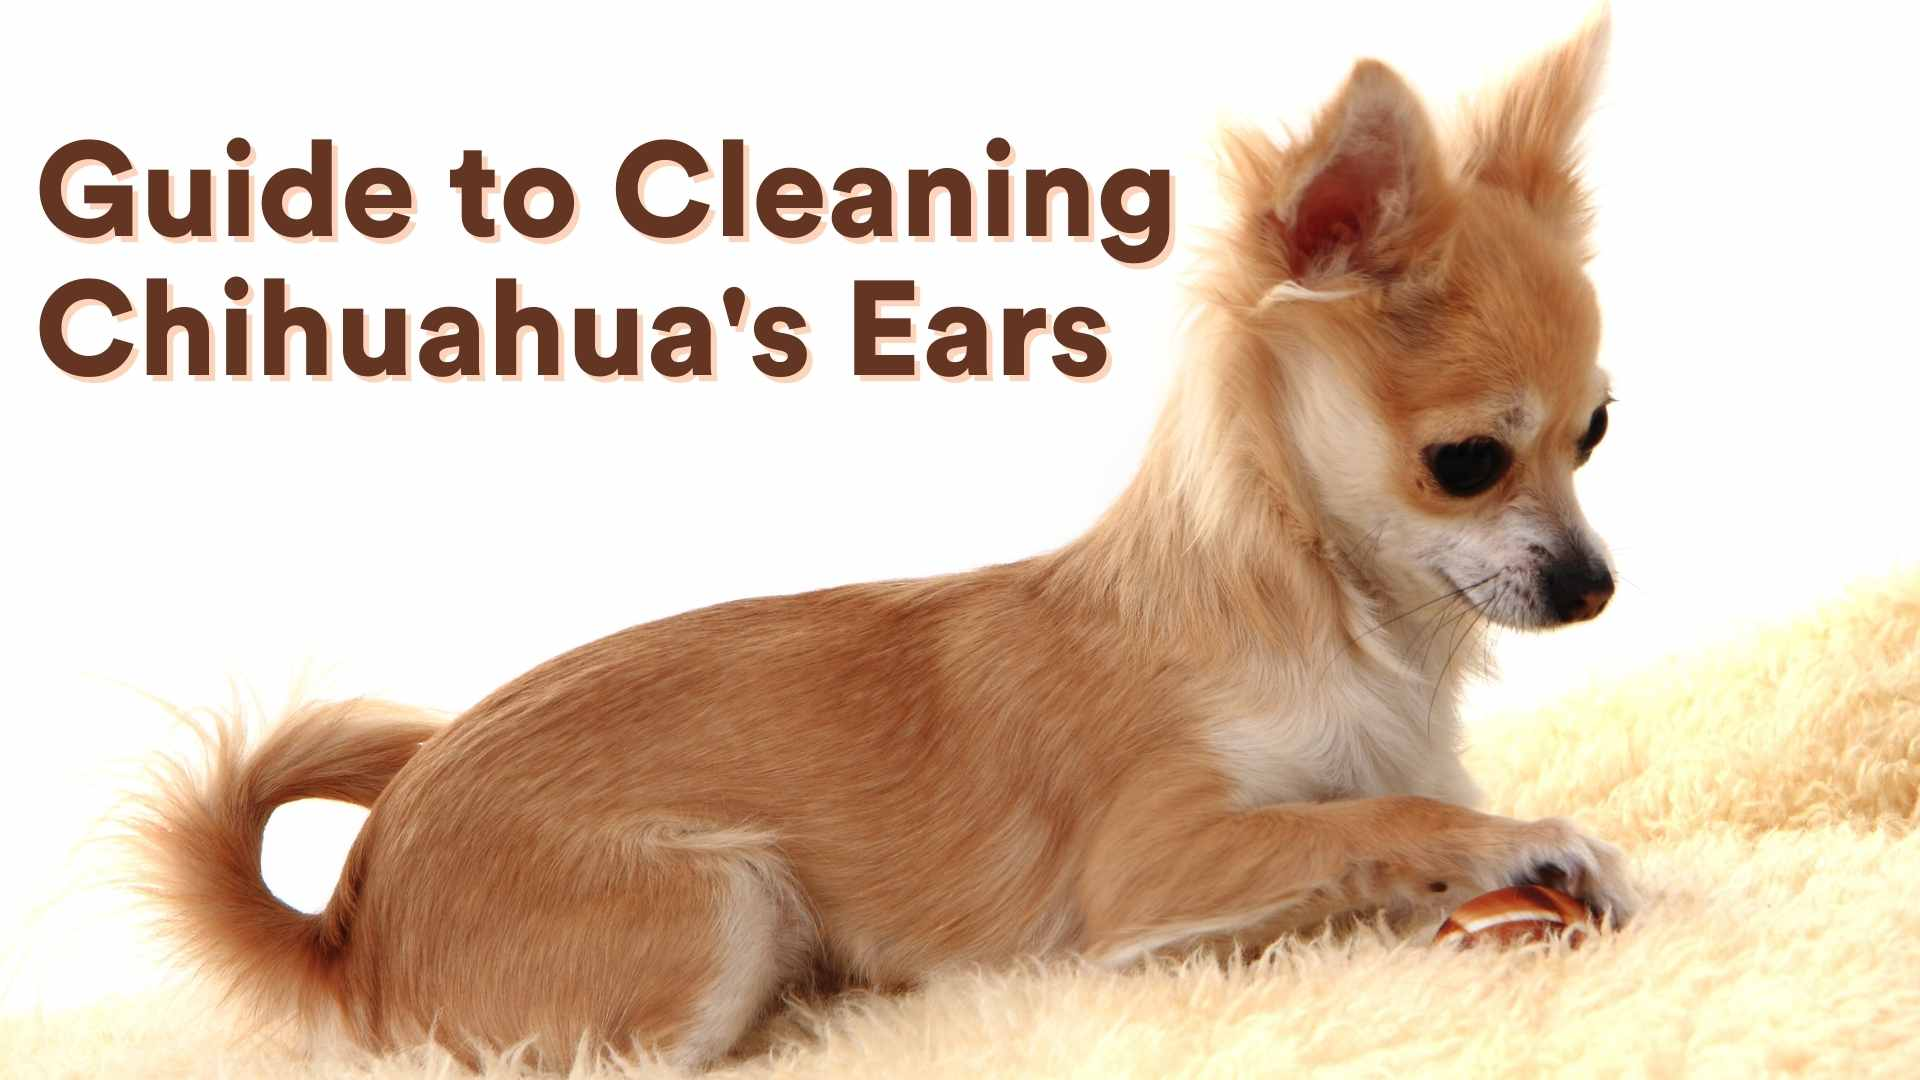 Guide to Cleaning Chihuahua's Ears